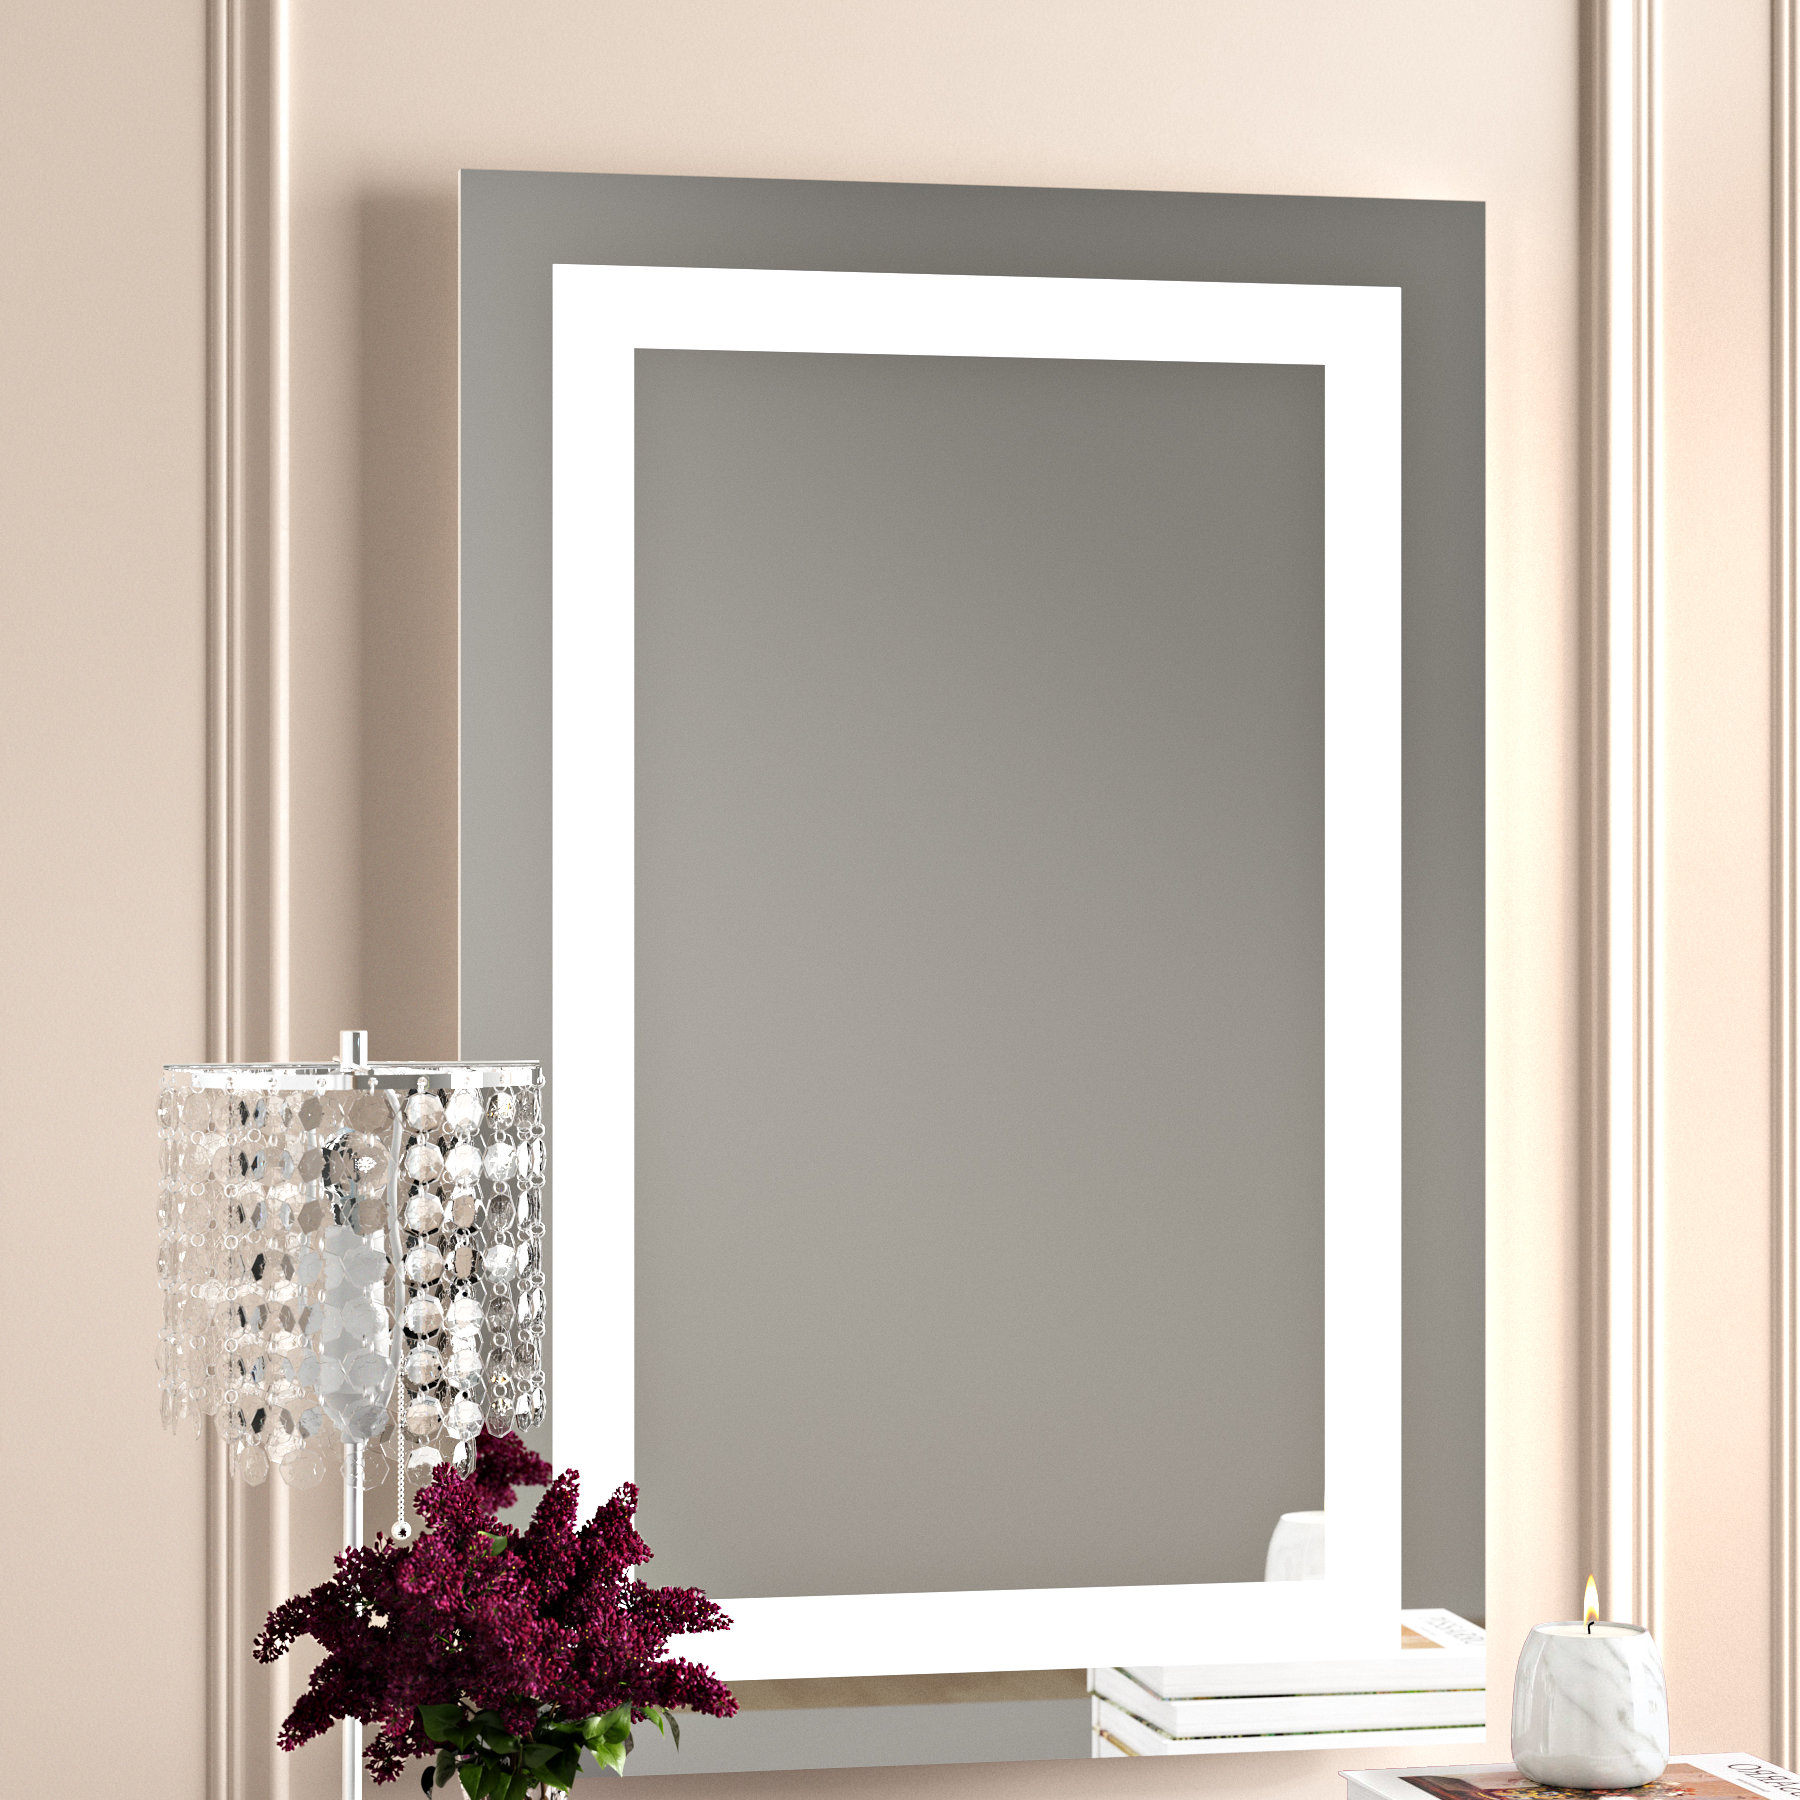 Lighted Wall Mirrors For Bathrooms Regarding Popular Rectangle Led Lighted Wall Mirror (View 2 of 20)